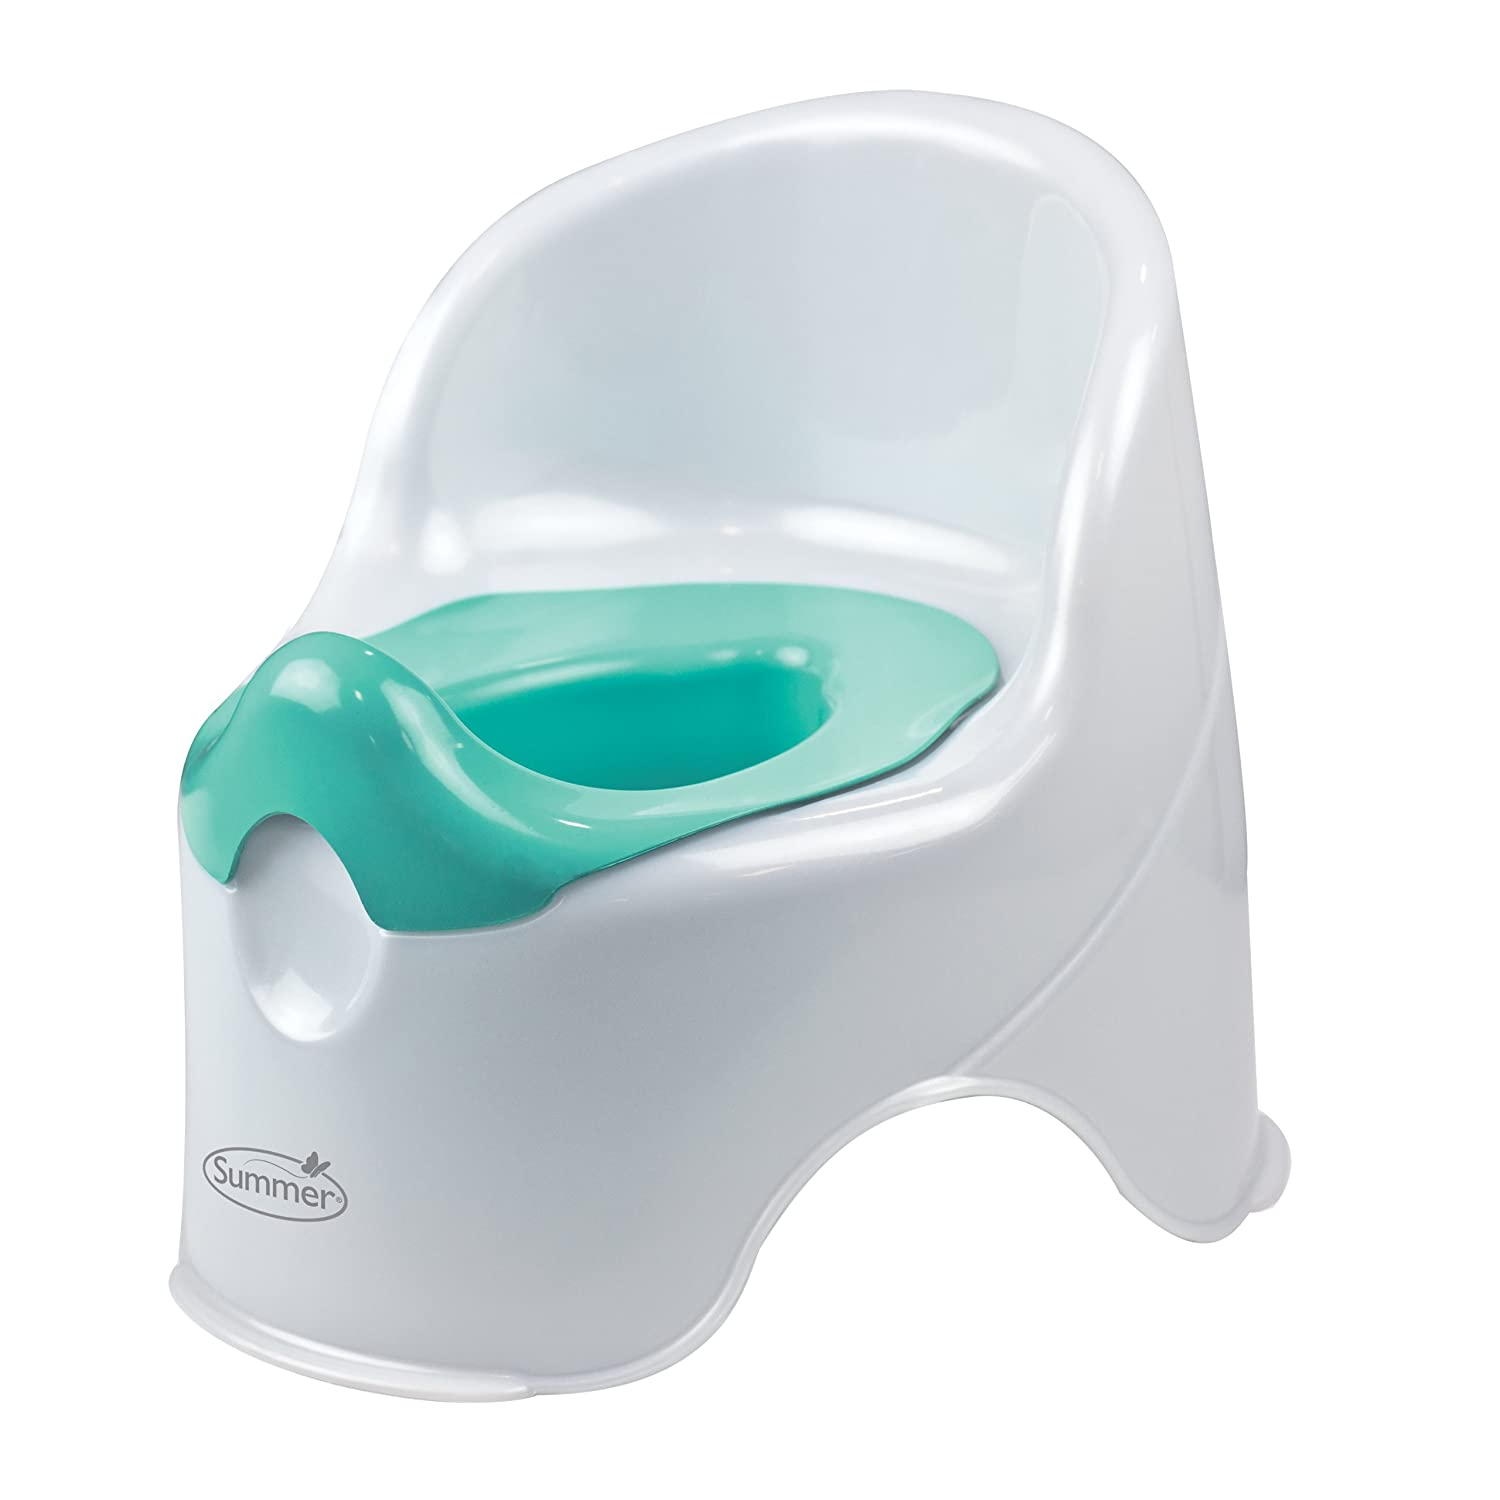 Boys Potty Chair Potties Seats Potty Training Toddler Removable Pot Splash